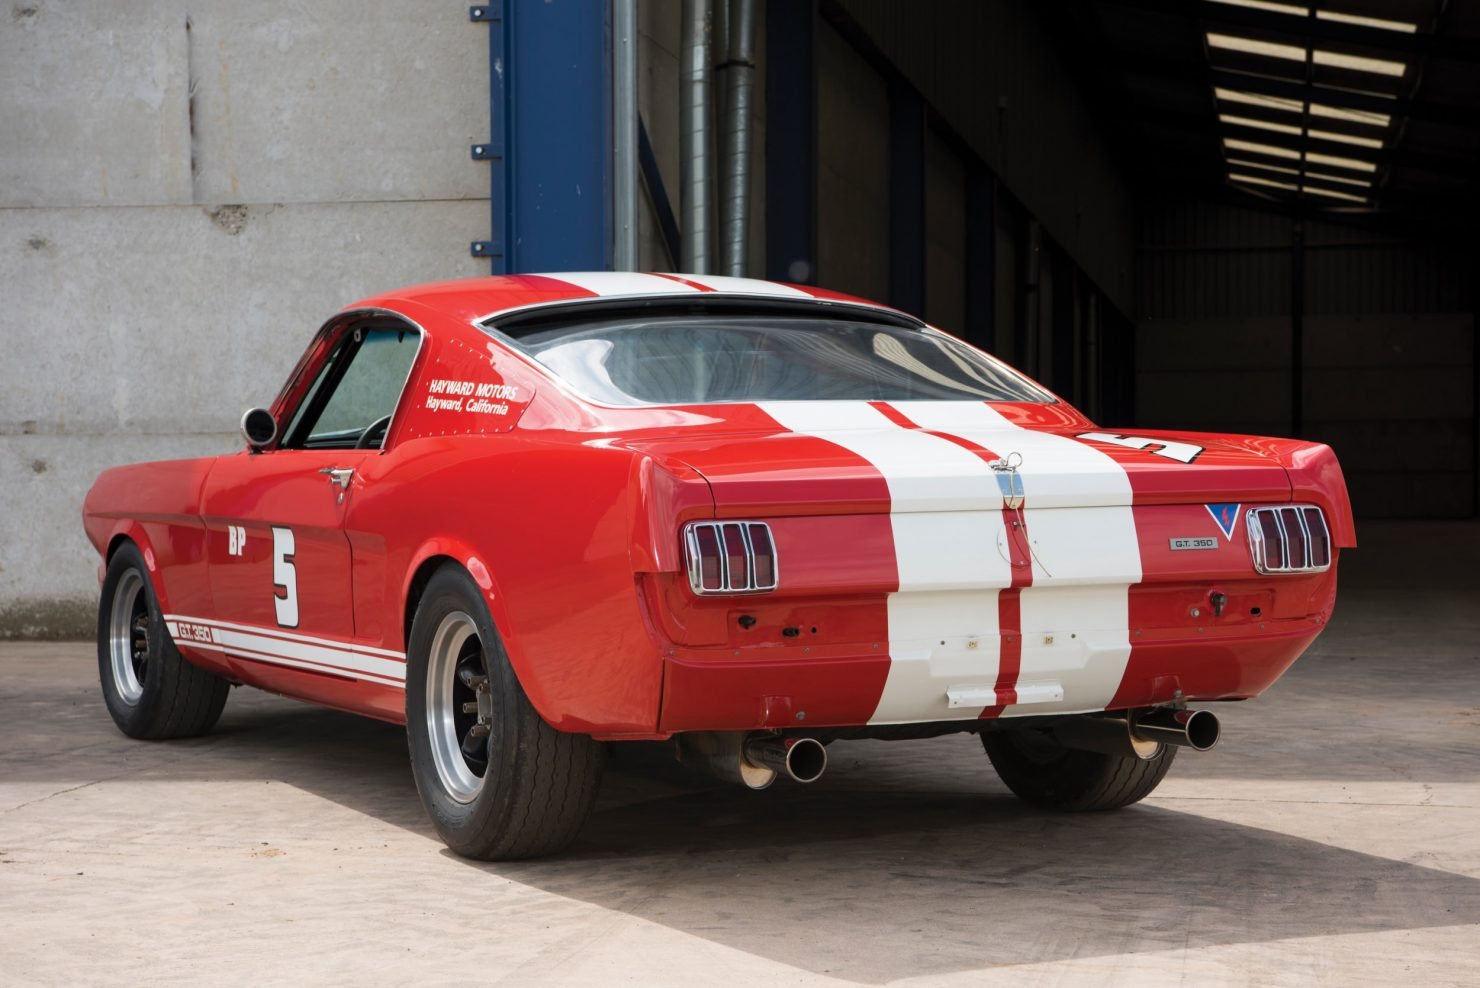 shelby gt350 race car 2 1480x988 - 1966 Shelby GT350 - Period SCCA Race Car